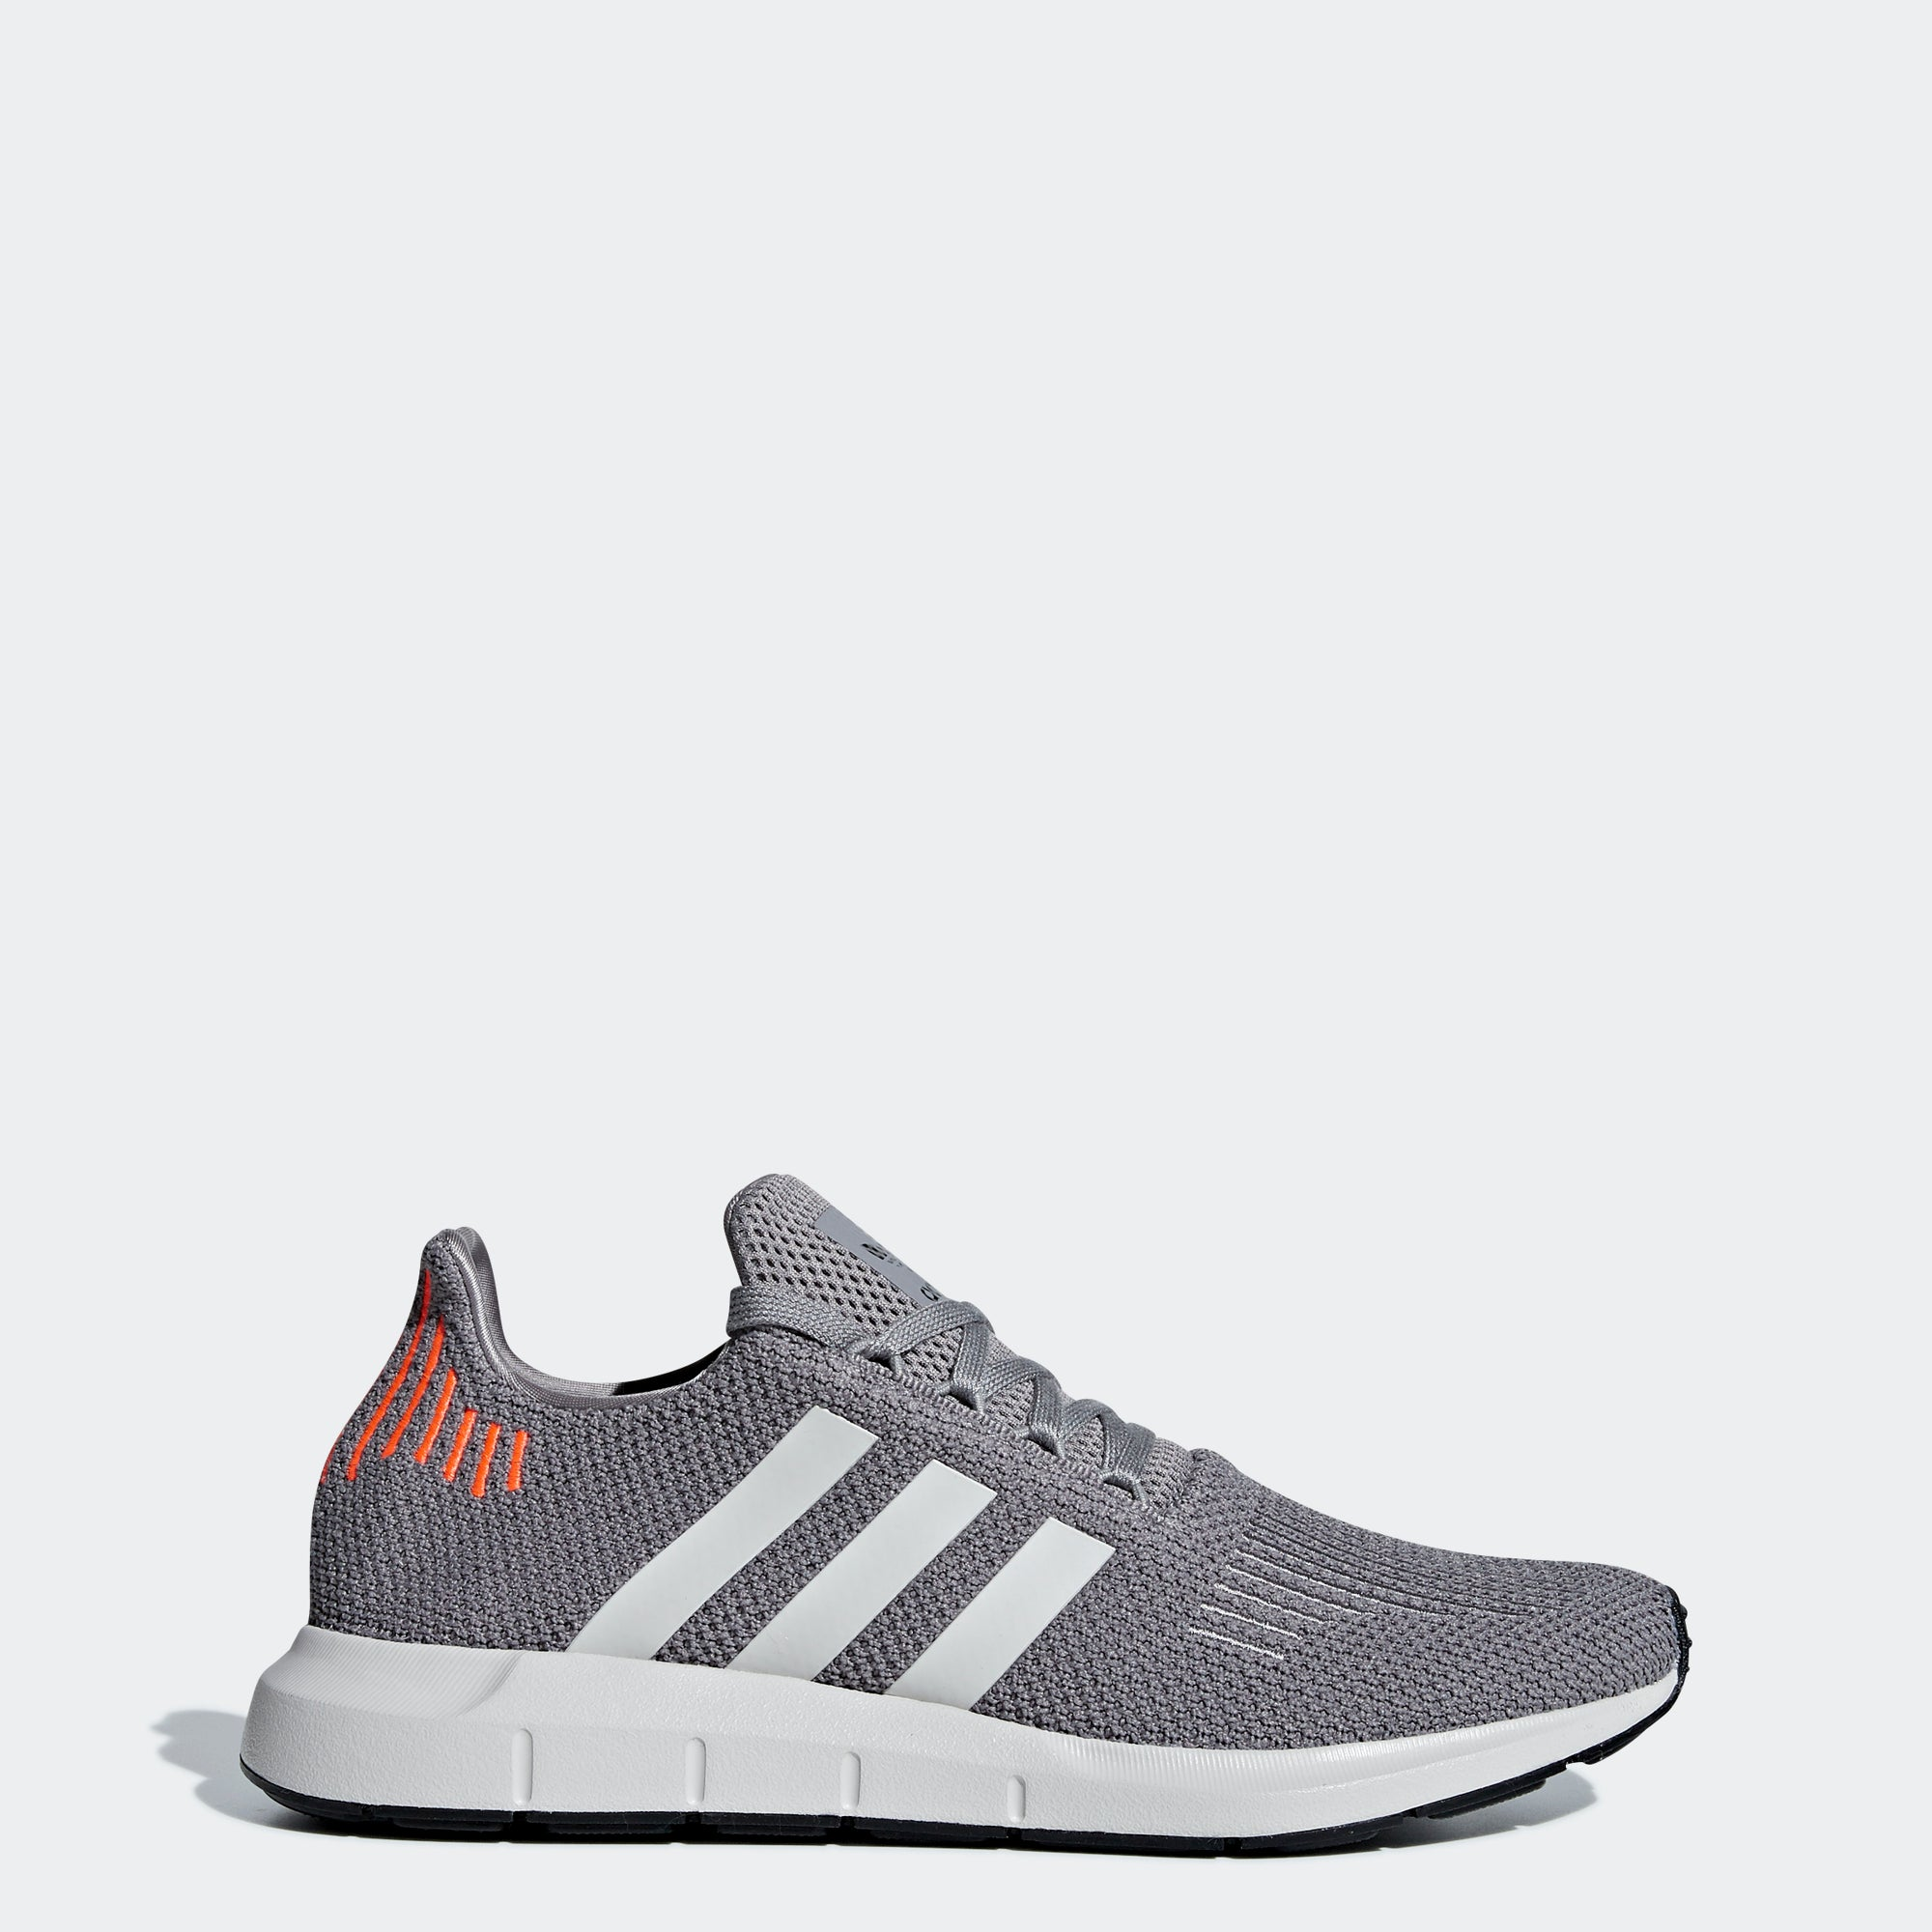 f6ead8d43 Men s adidas Originals Swift Run Shoes Grey Orange